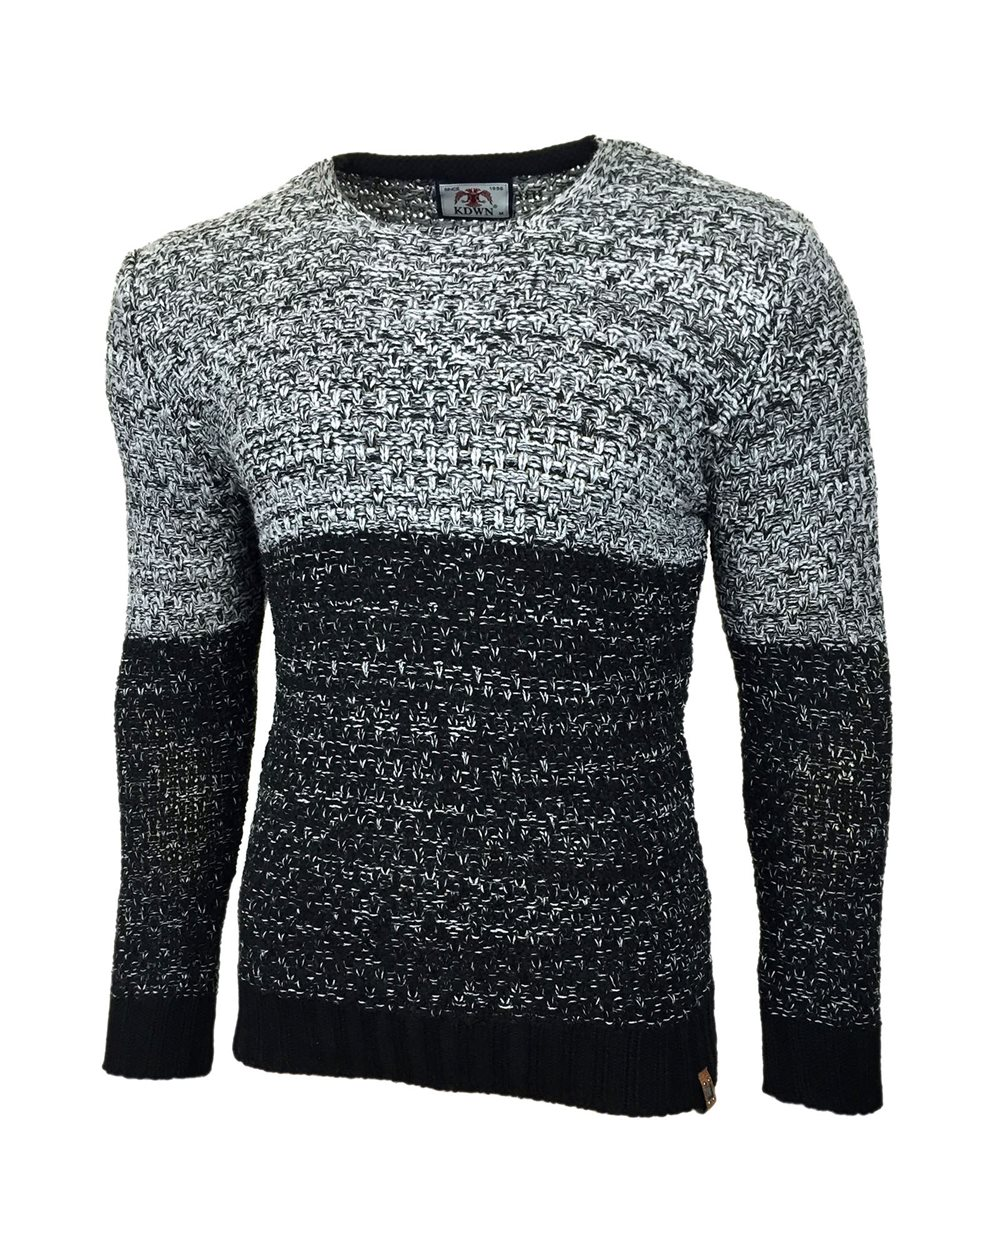 Subliminal Mode - Pull homme col arrondi grosse maille chine KD16065